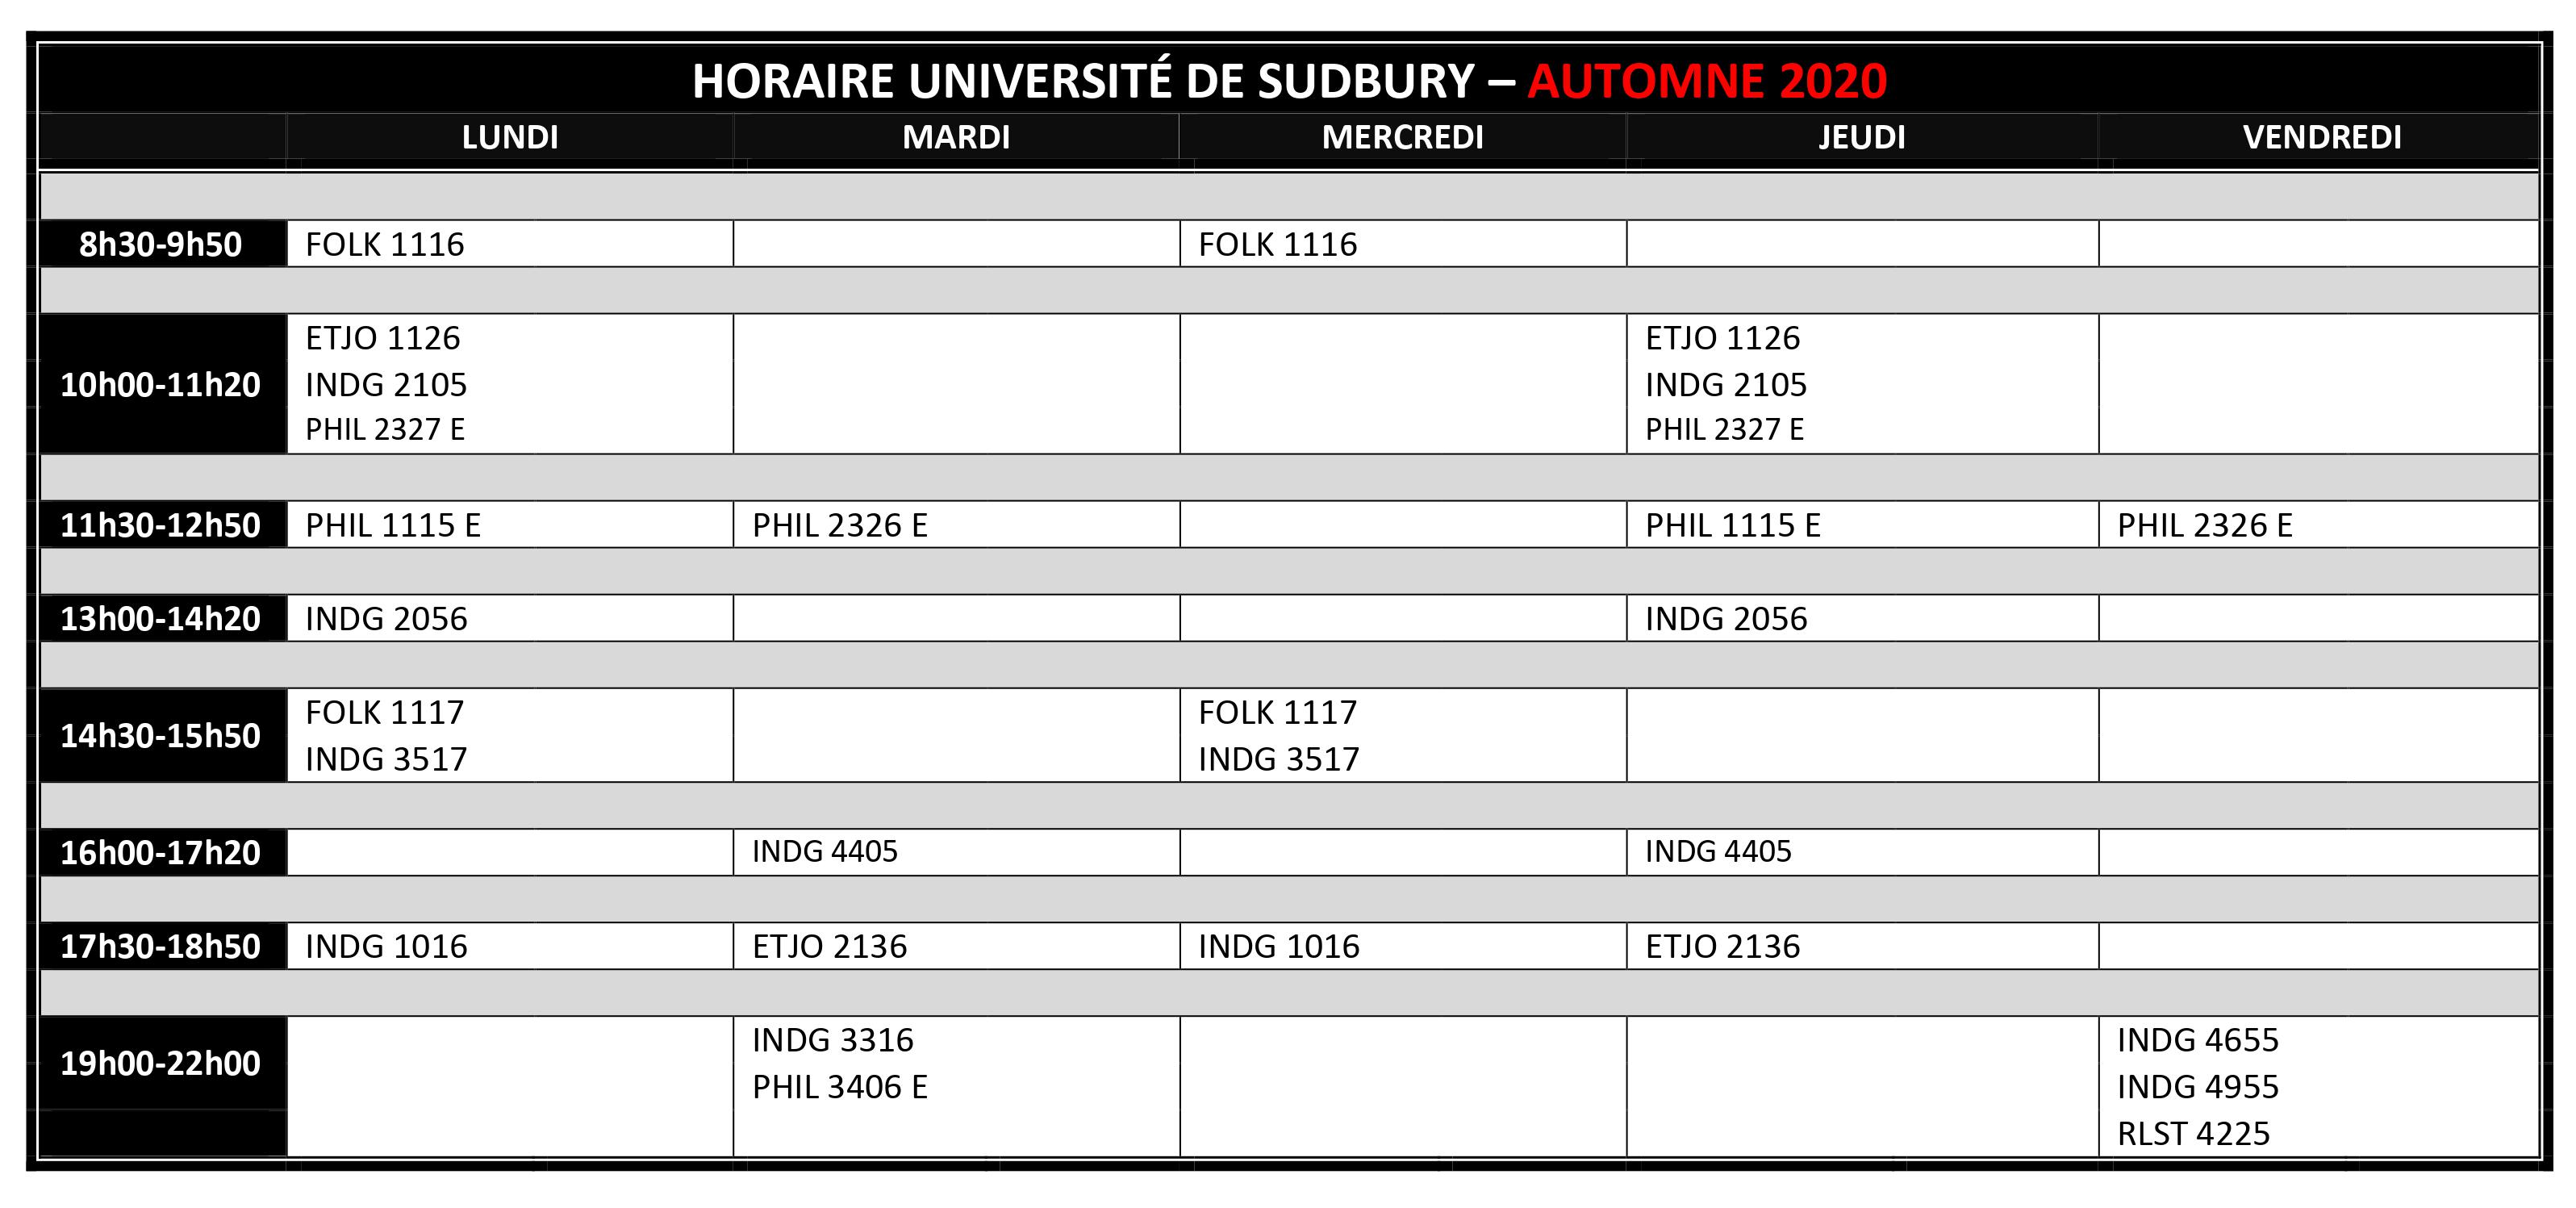 2020 2021 AUTOMNE HORAIRE FR